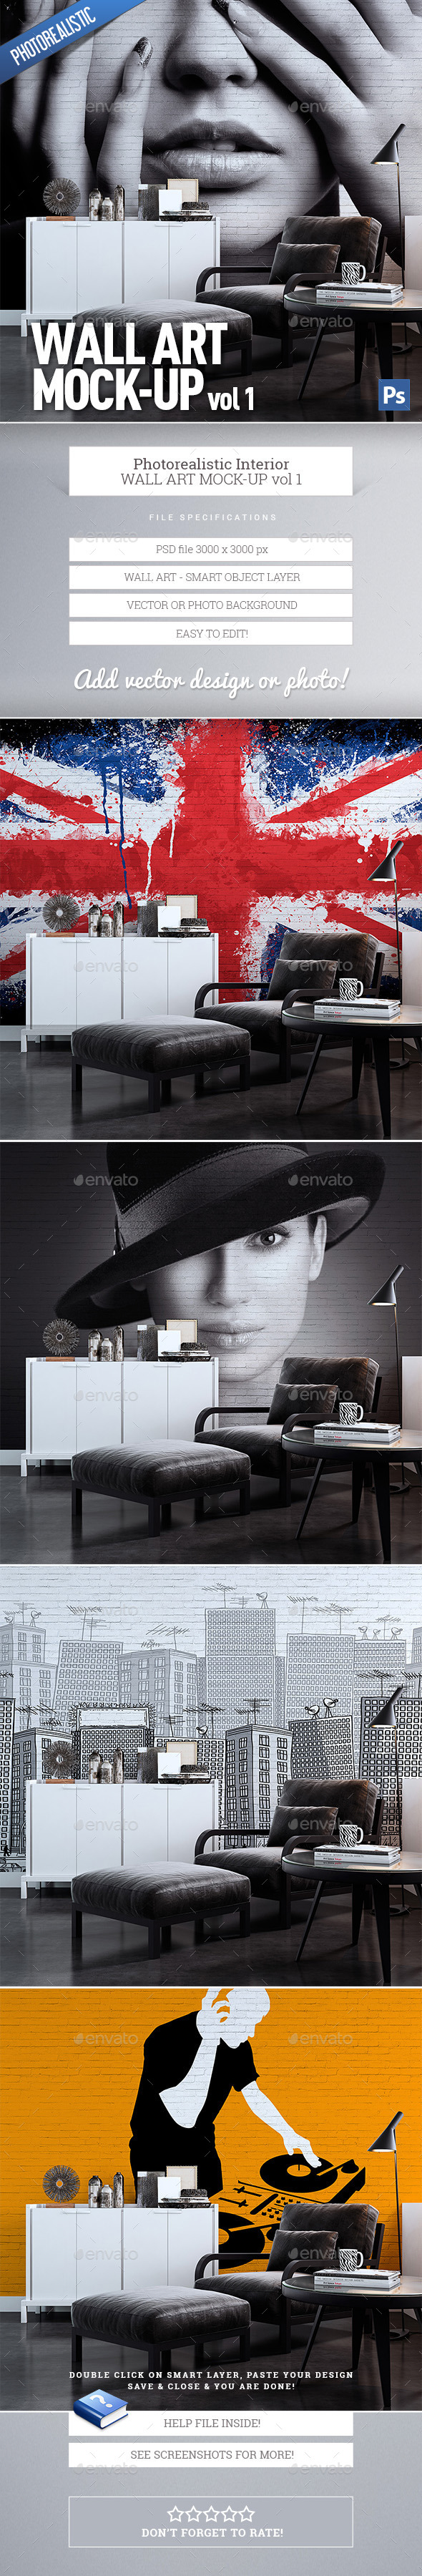 GraphicRiver Wall Art Mock-Up vol.1 9822161